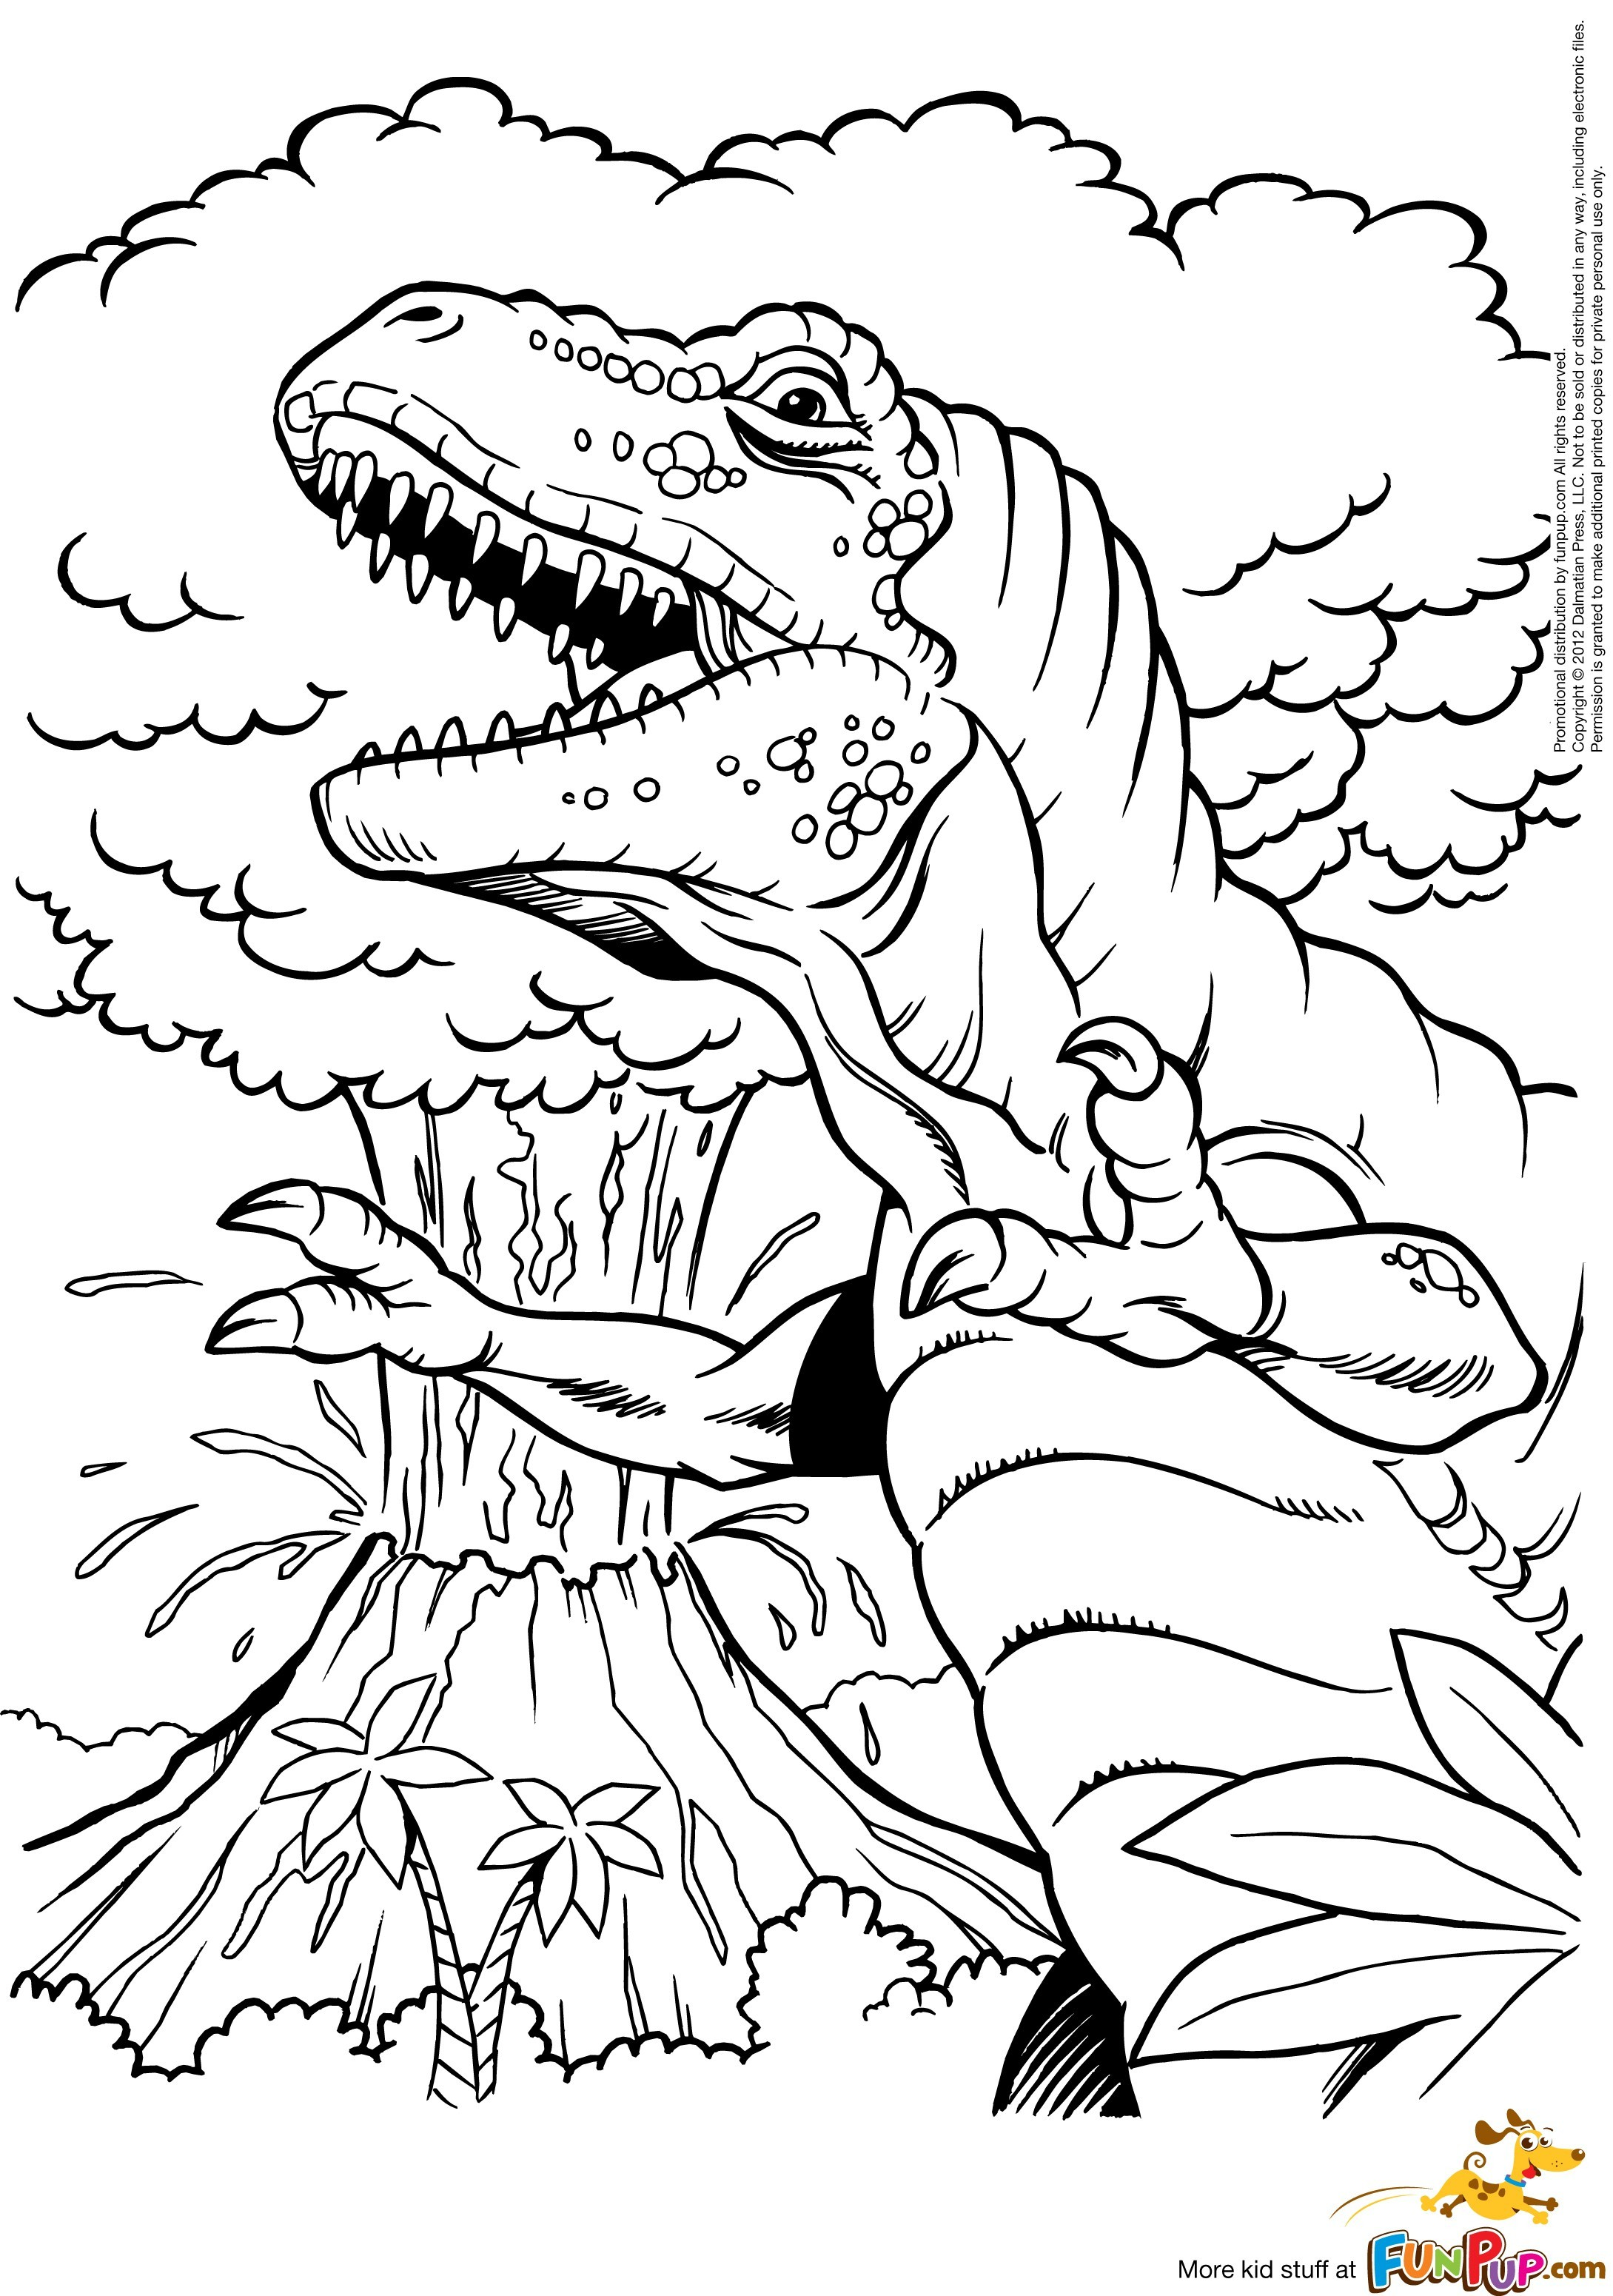 Minecraft Dinosaurs Coloring Pages